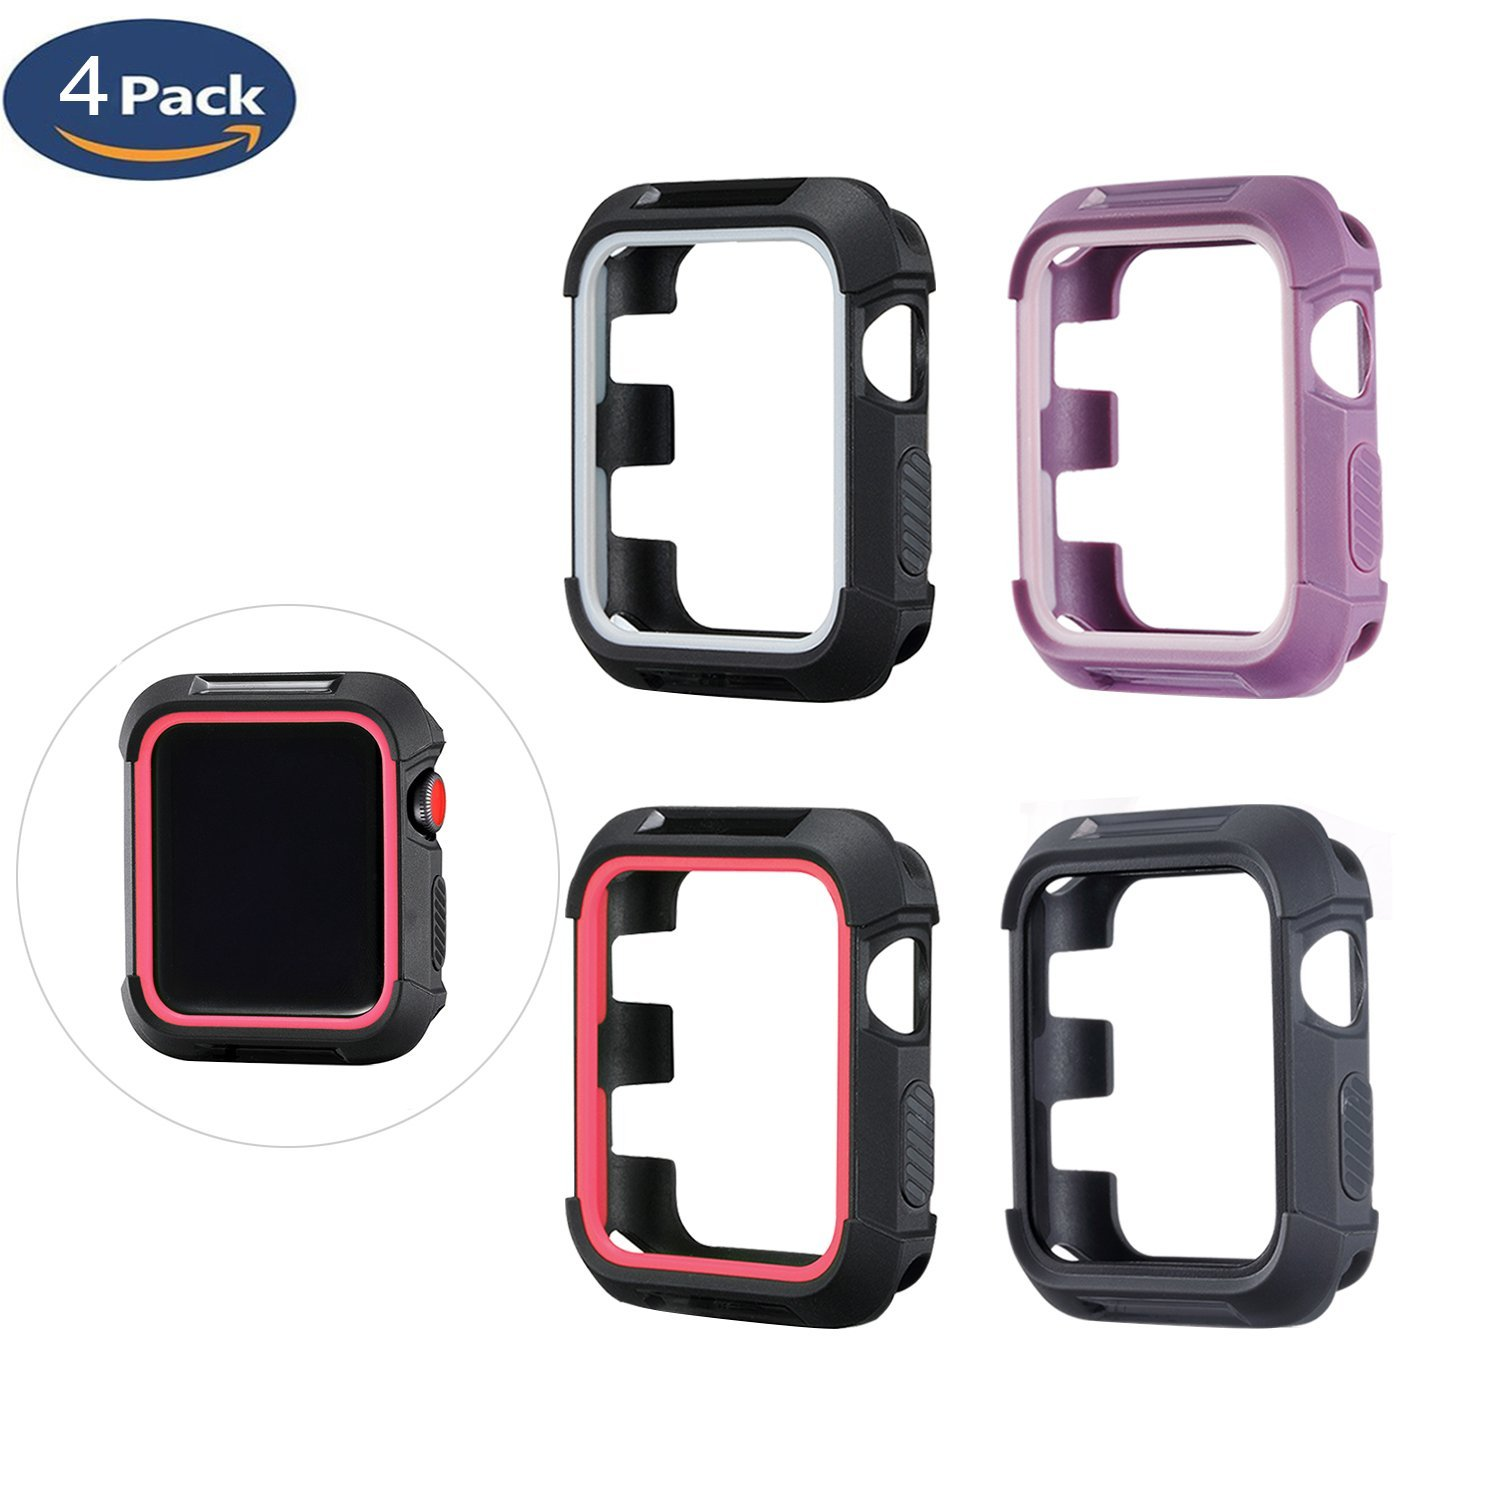 Apple Watch Cover Case 42mm [4 Pack], MAIRUI iWatch Rugged Protective Bumper Case Shock-proof and Shatter-resistant Protector for Apple Watch iWatch Series 3/2/1, Sport, Edition, Nike+